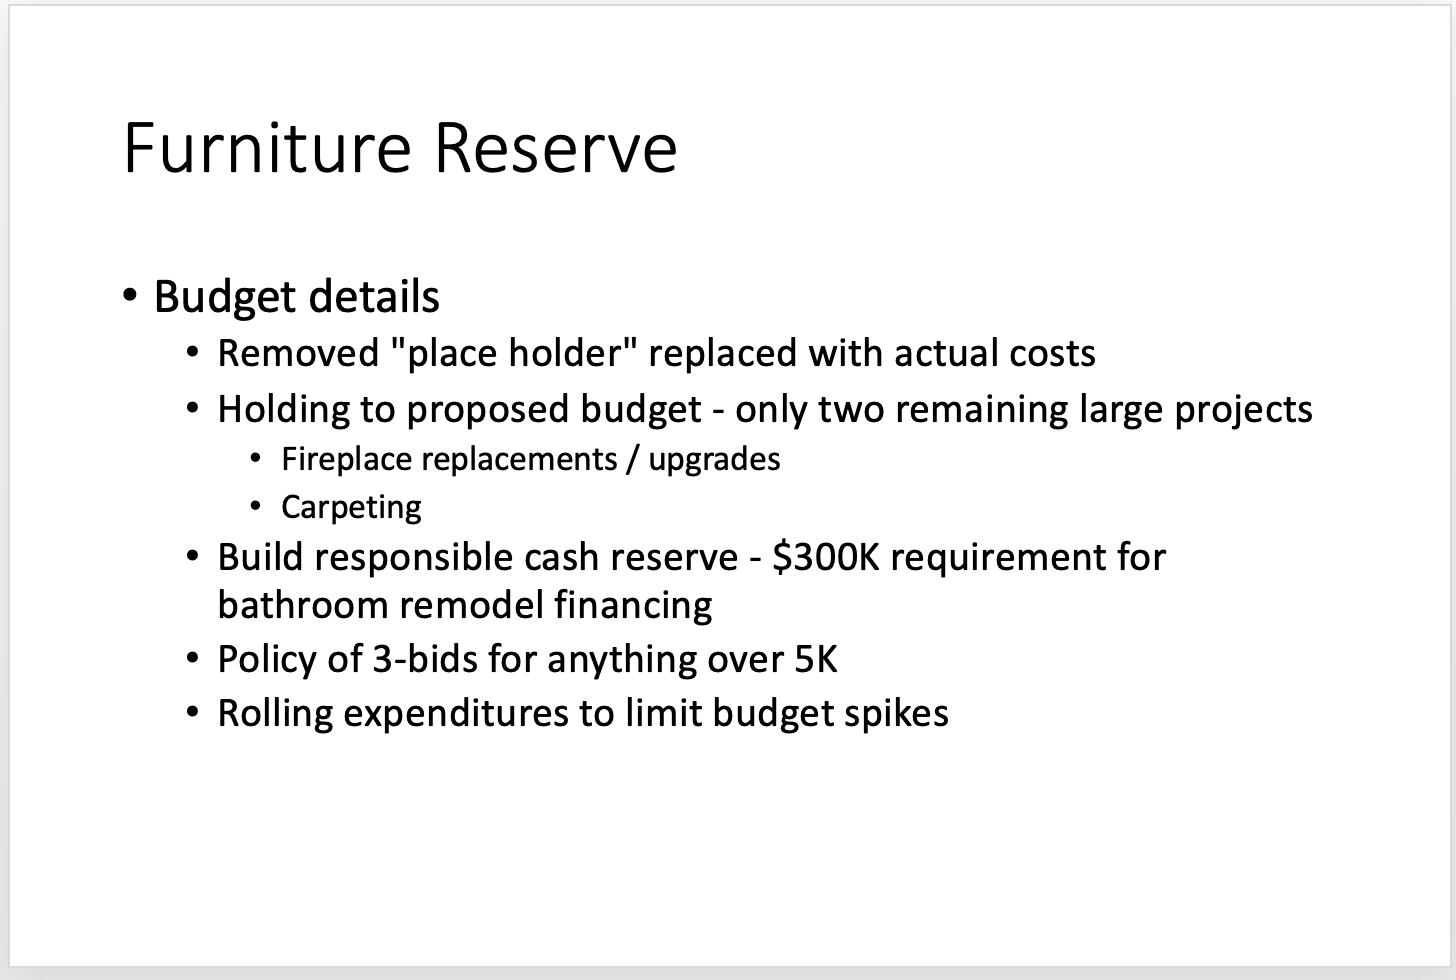 Fireplace replacements 2019 - Likely move out to 2021 Carpeting Window treatments - Ongoing Refinishing the woodwork throughout - 2mil savings, saving a better product - Done Fund as much of the bathroom redo as possible with Furniture Reserve - reduce the amount of any additional assessment Technology upgrades - Internet; appliances; TV's Bathroom assessments to build for anticipated construction October 2019-2020 - goal of off setting bathroom assessment